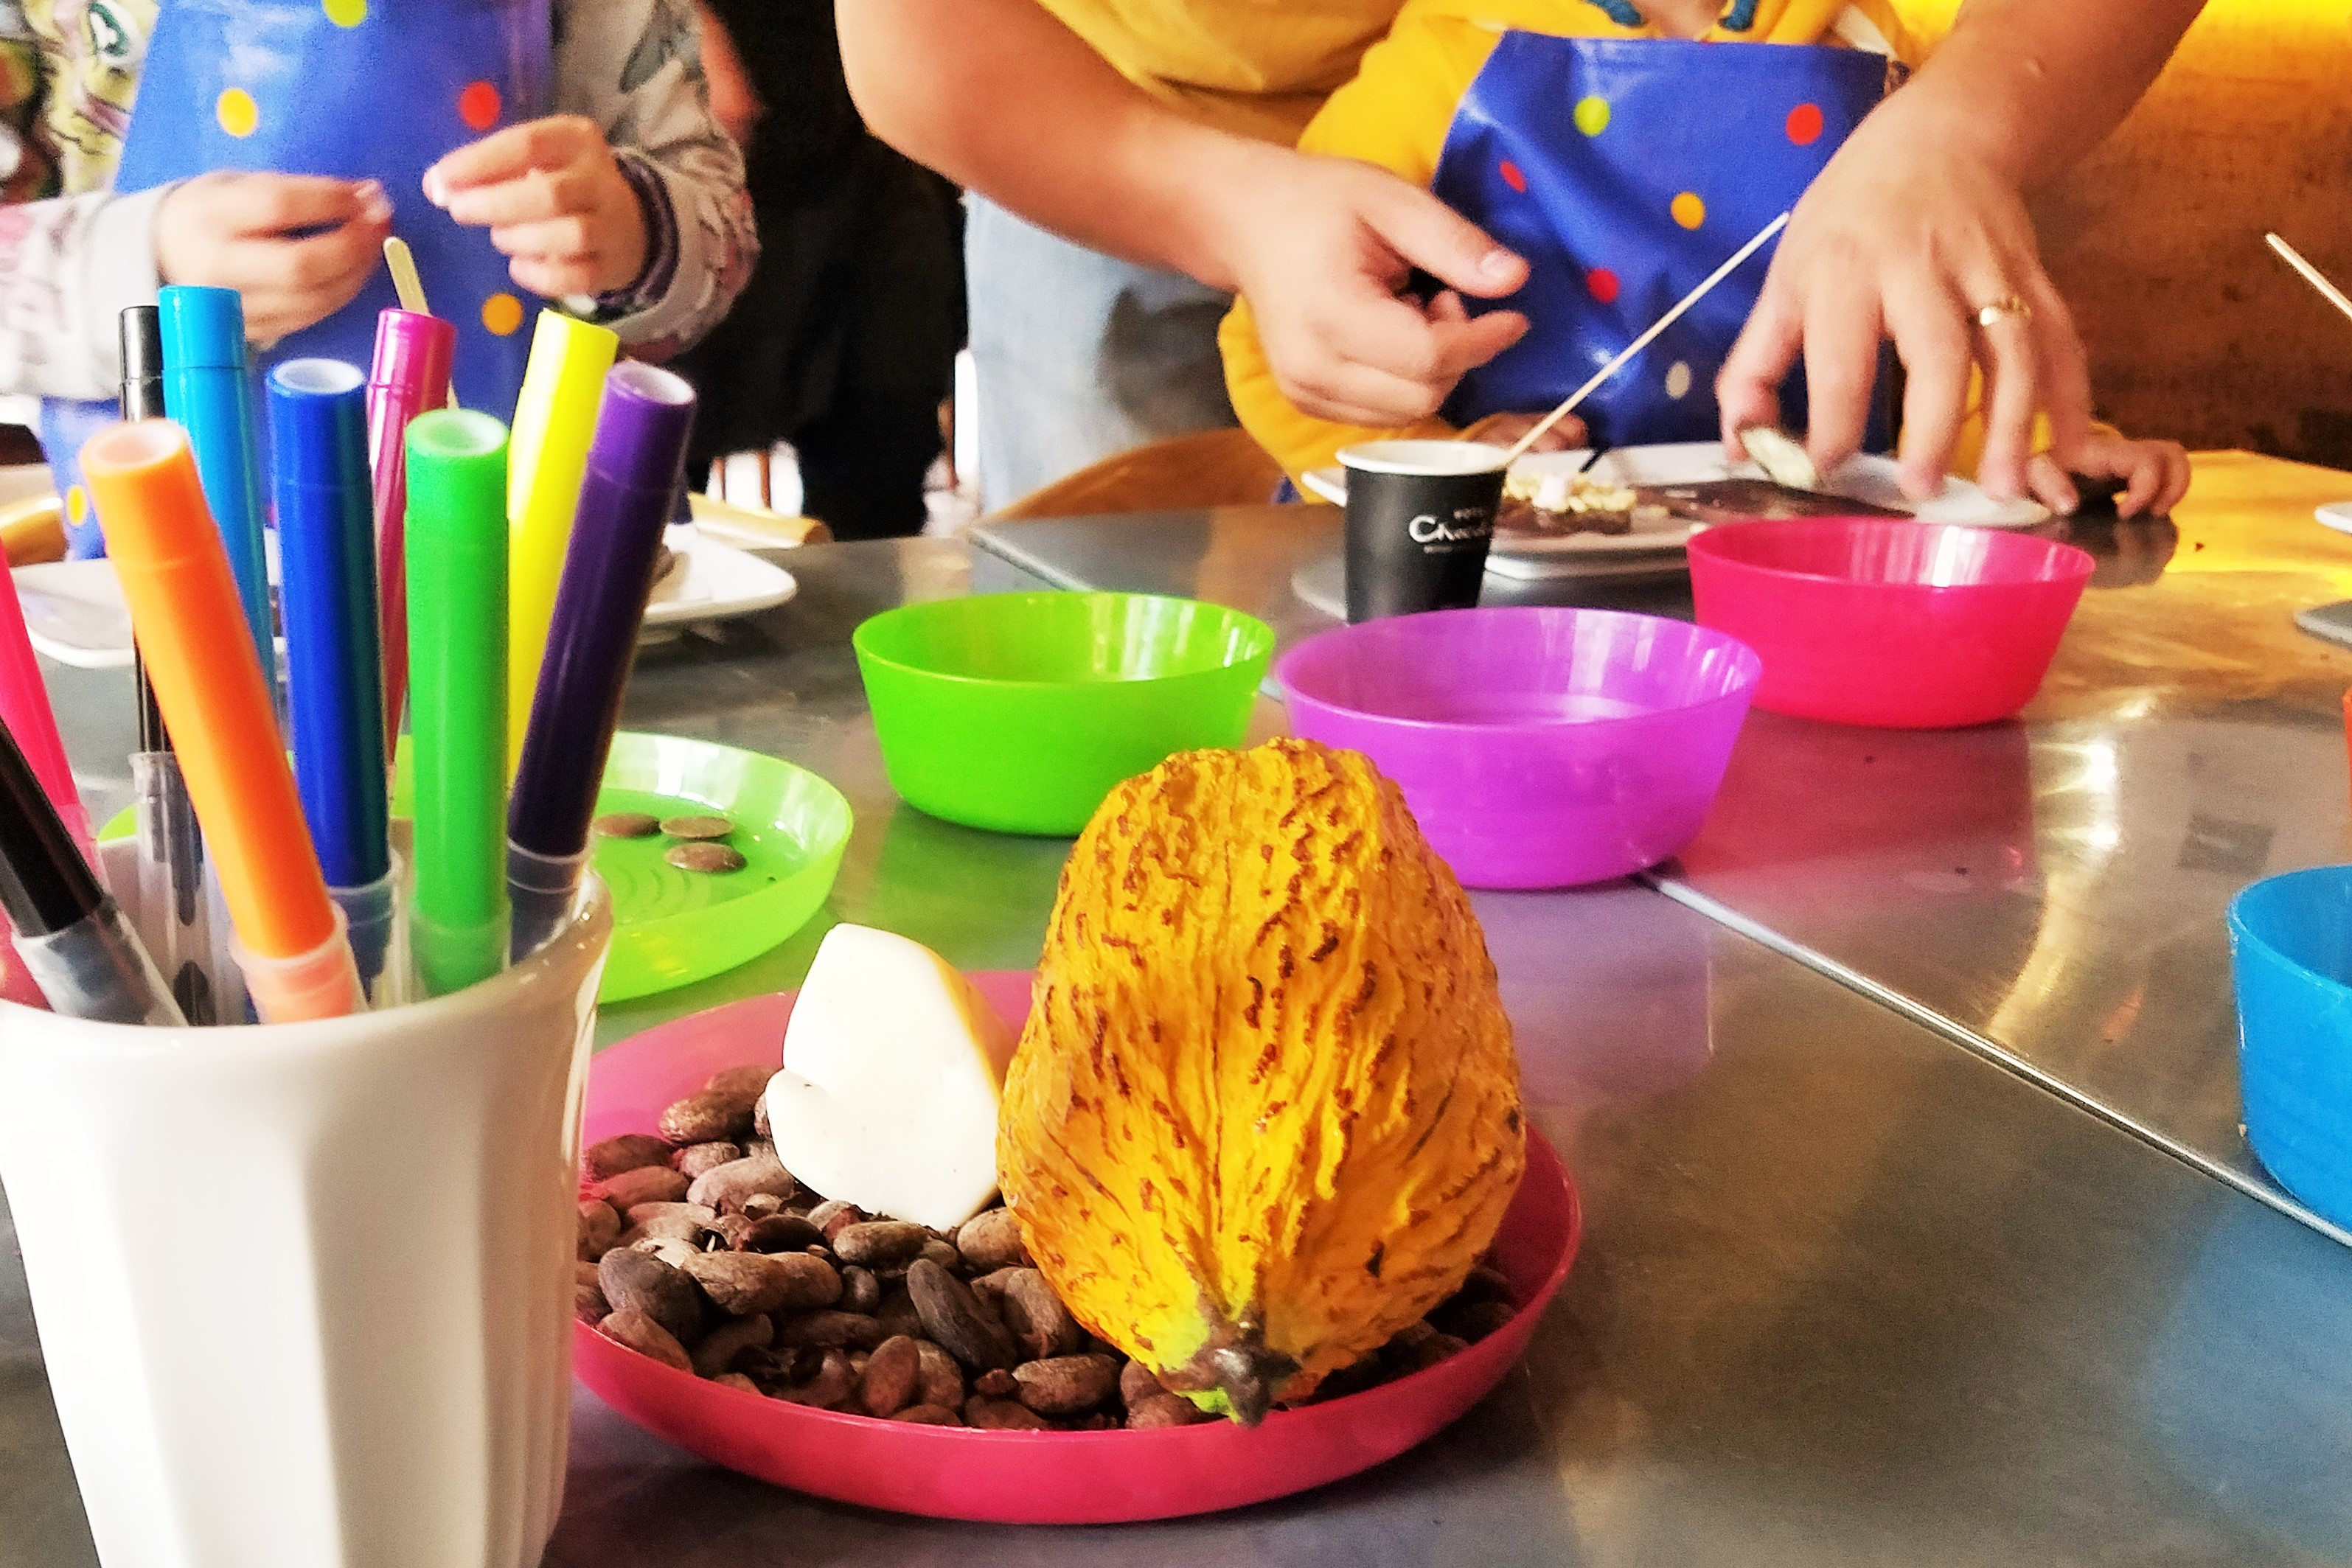 Hotel Chocolat decorating chocolate slabs - kids' party ideas